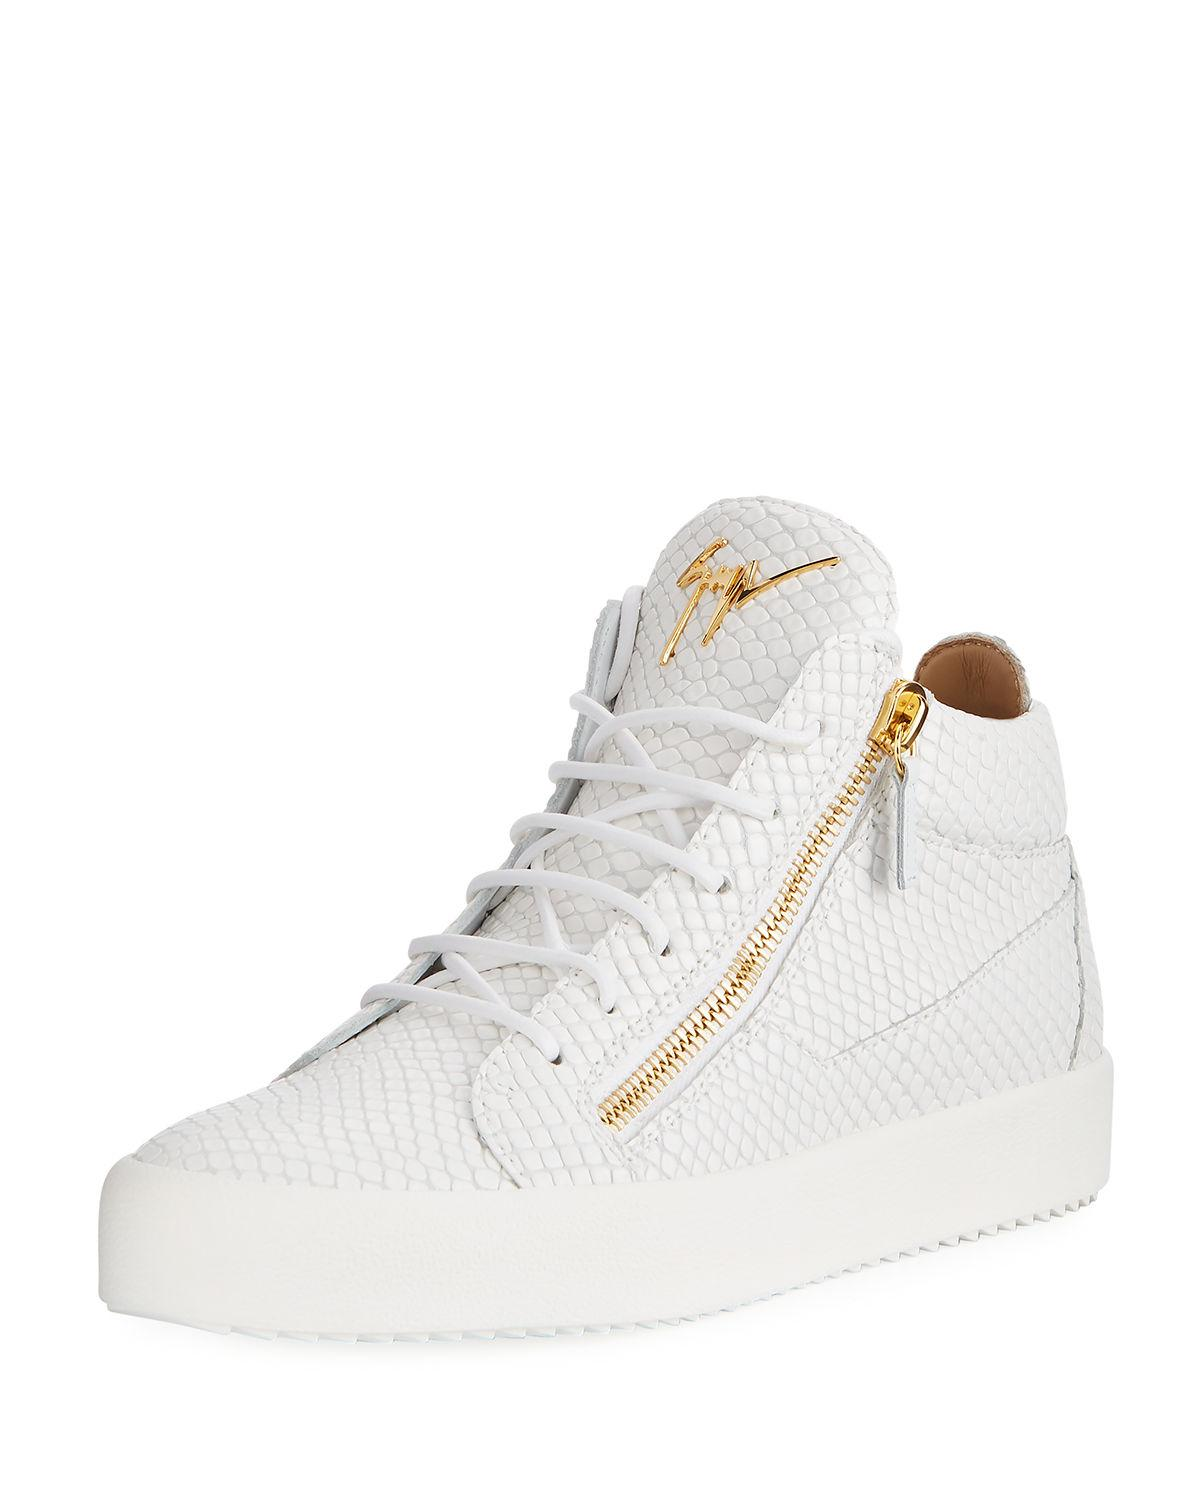 c0437d7b4191b Lyst - Giuseppe Zanotti Men's Embossed Leather Mid-top Sneakers in ...